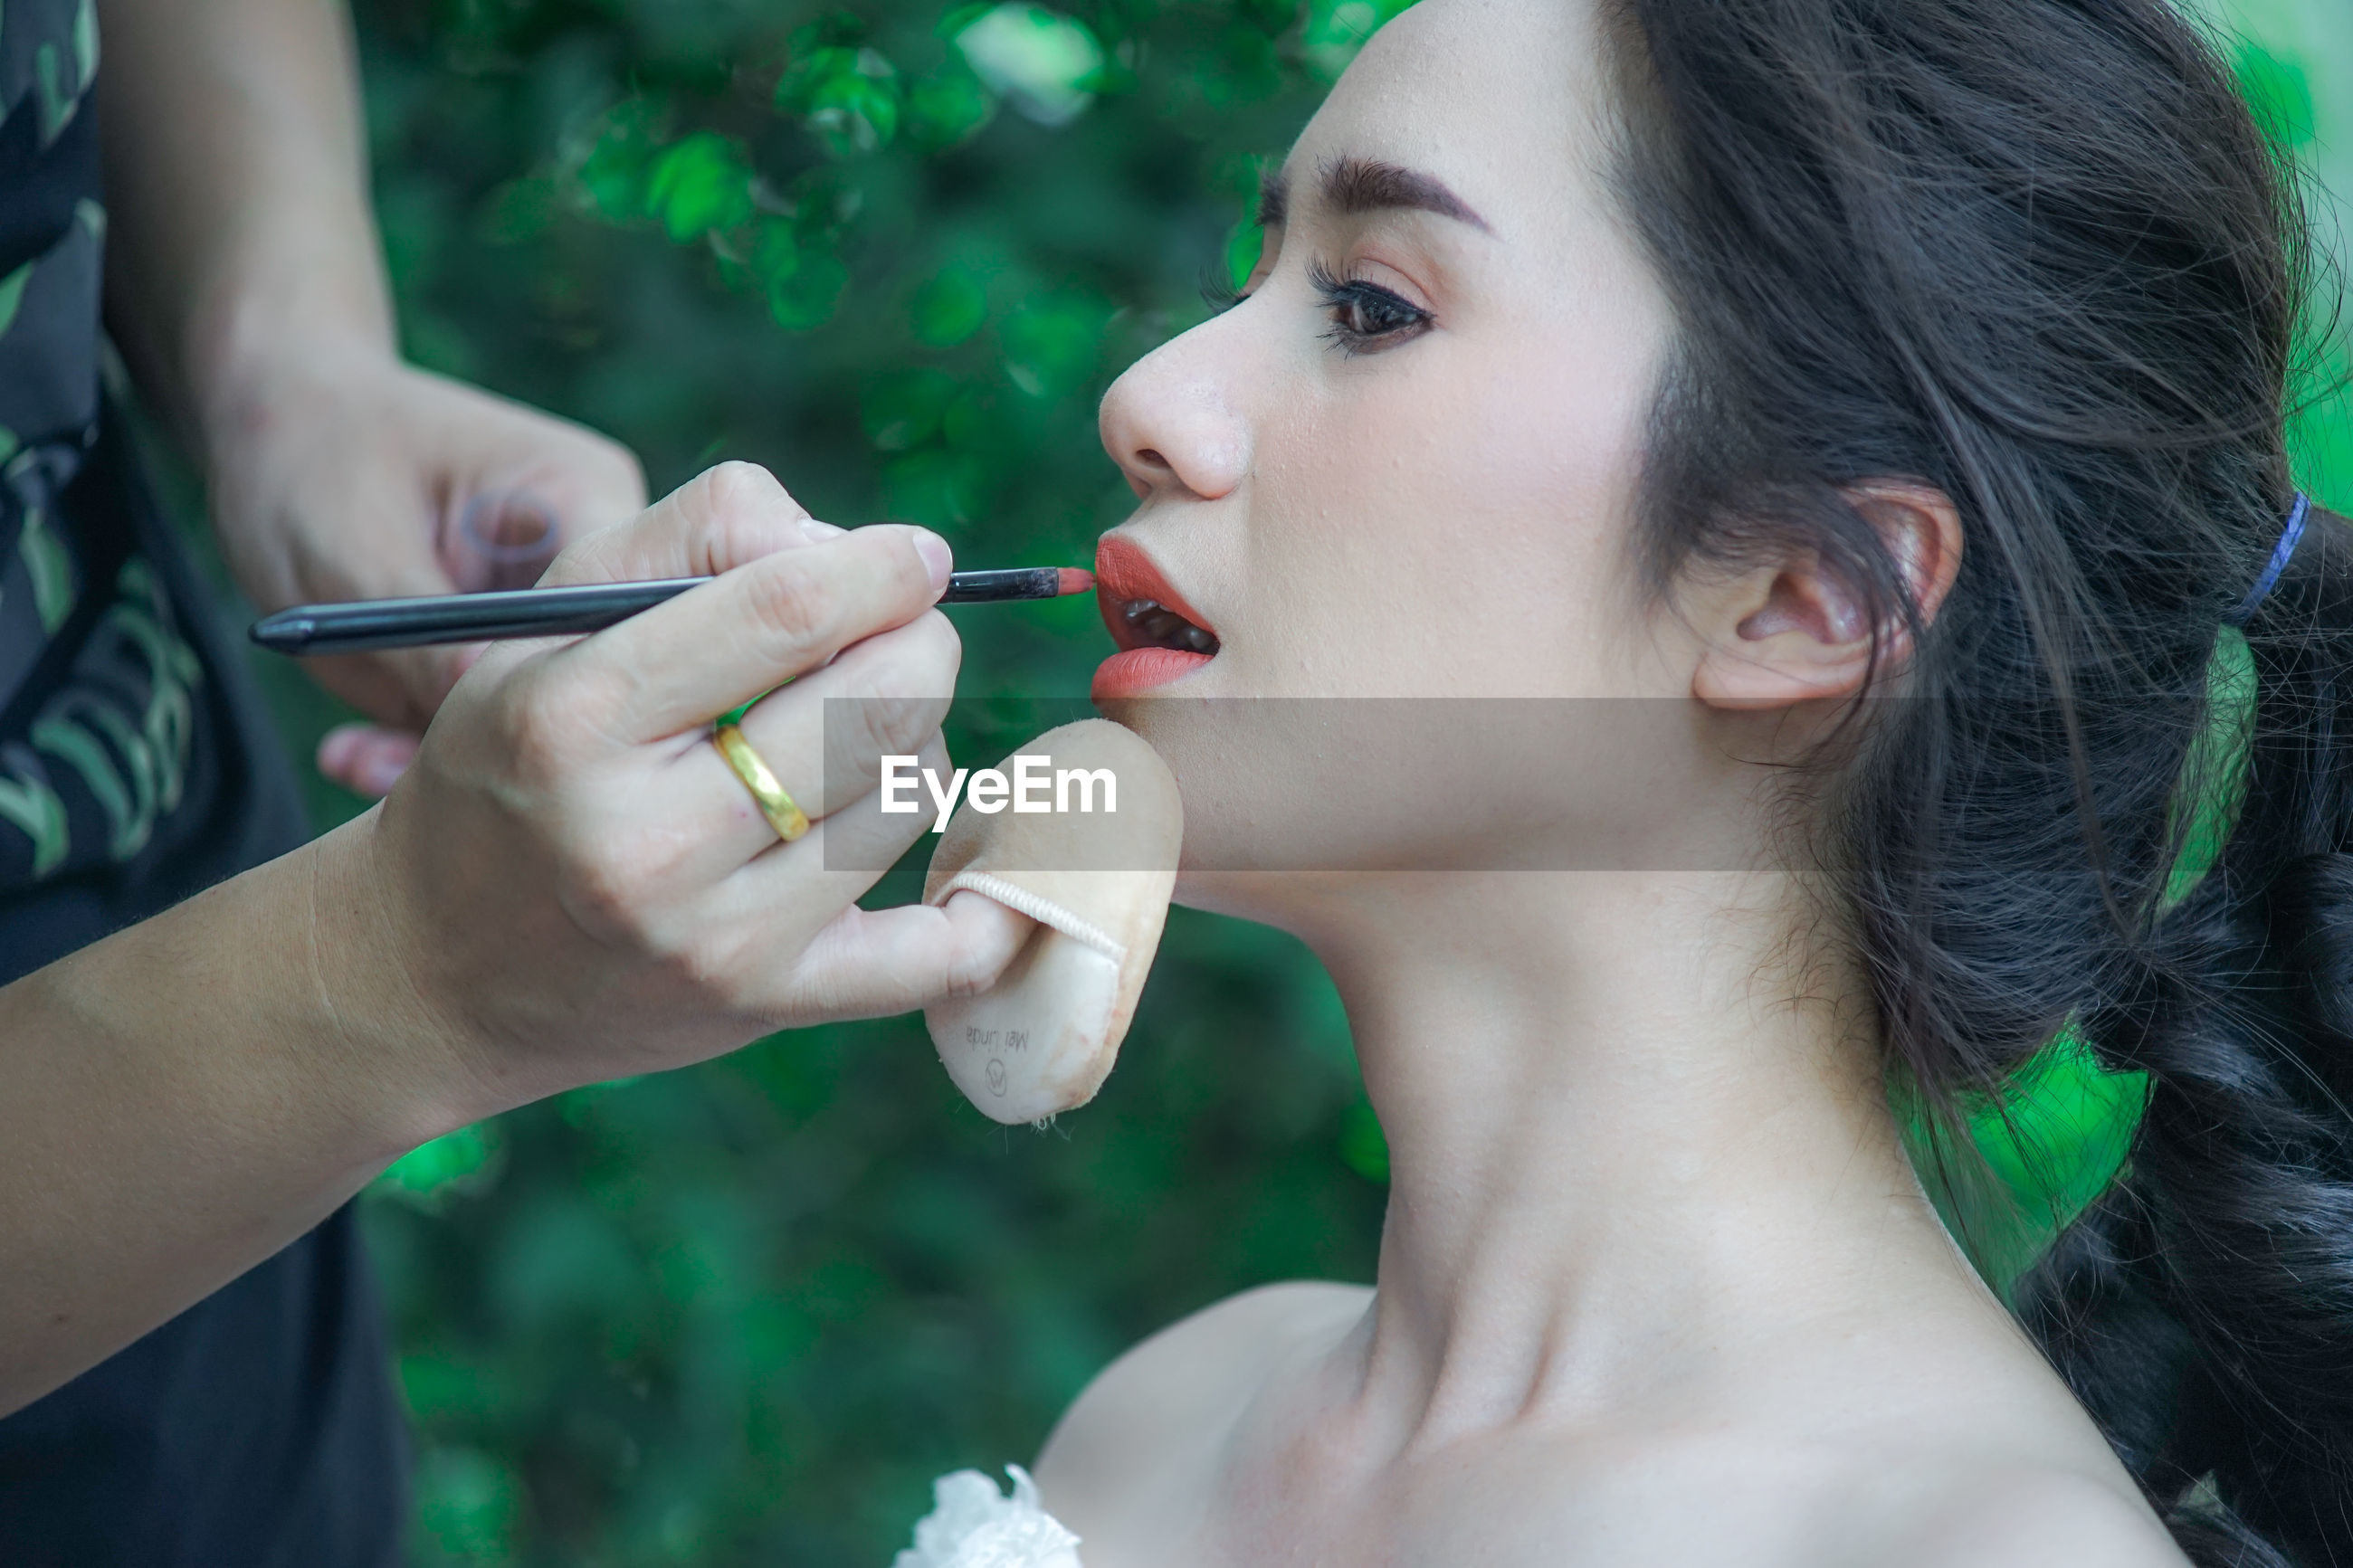 Close-up of person applying make-up on woman face